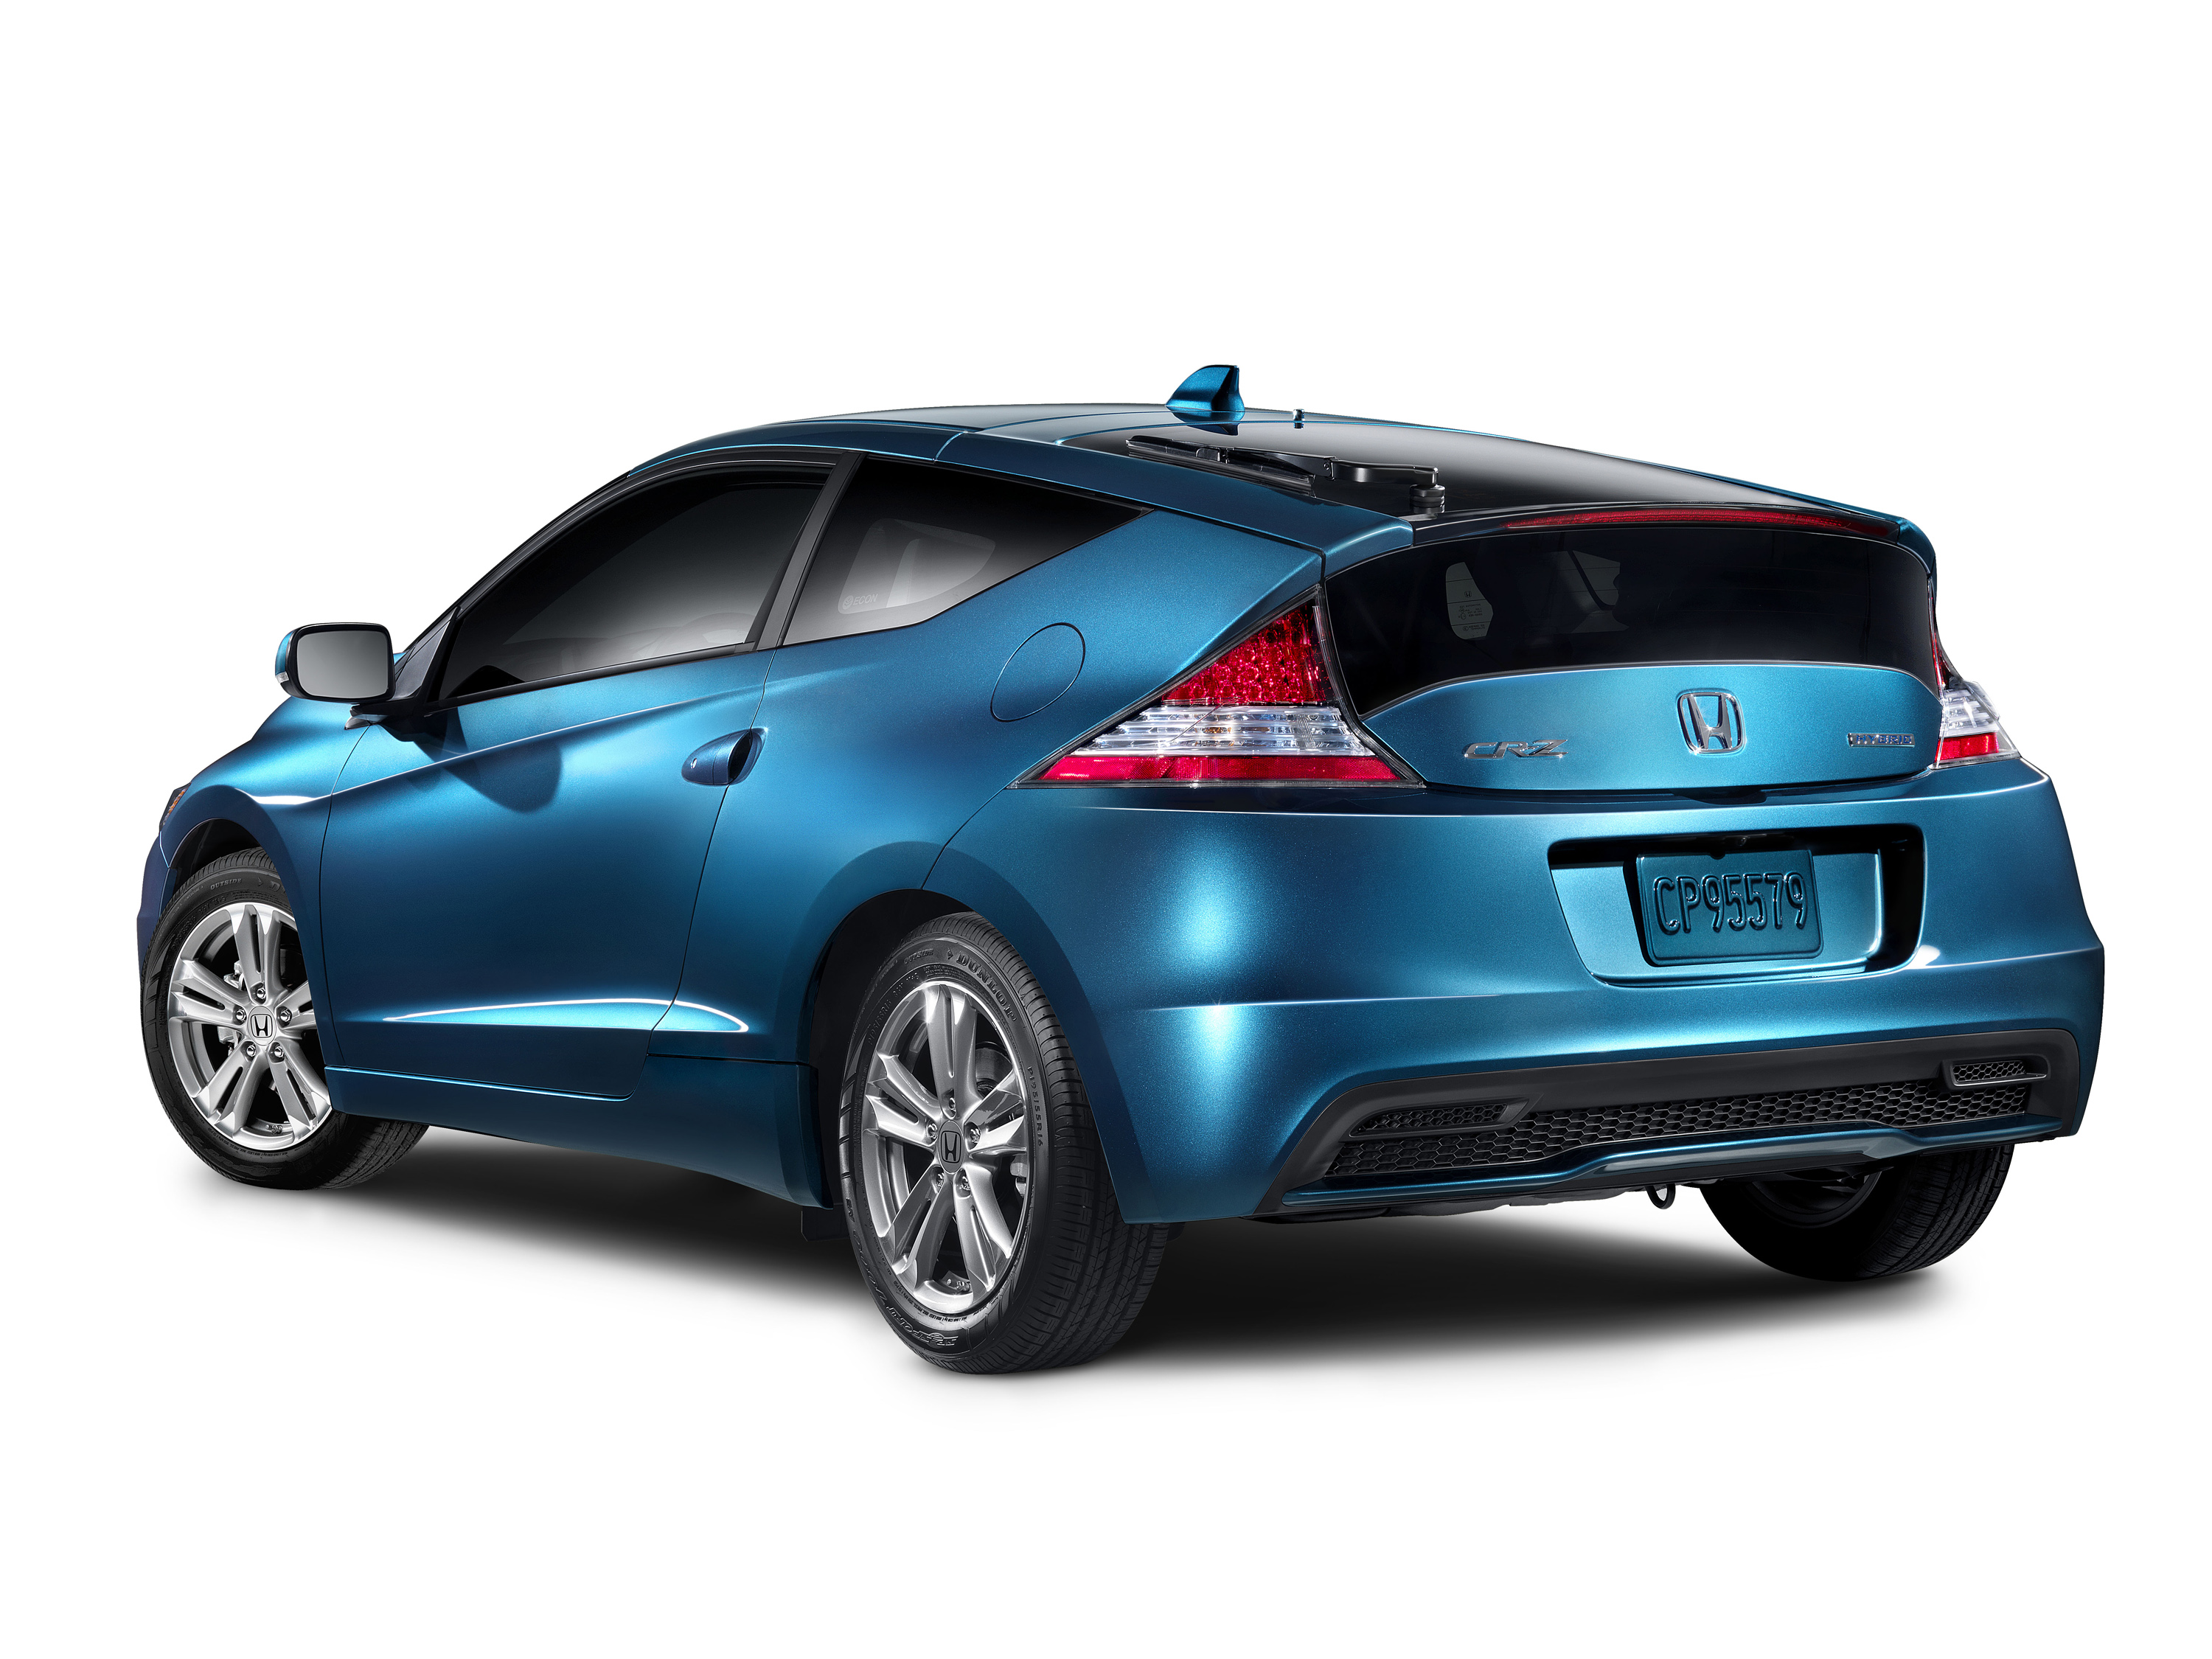 New And Used Honda Crz Prices, Photos, Reviews, Specs